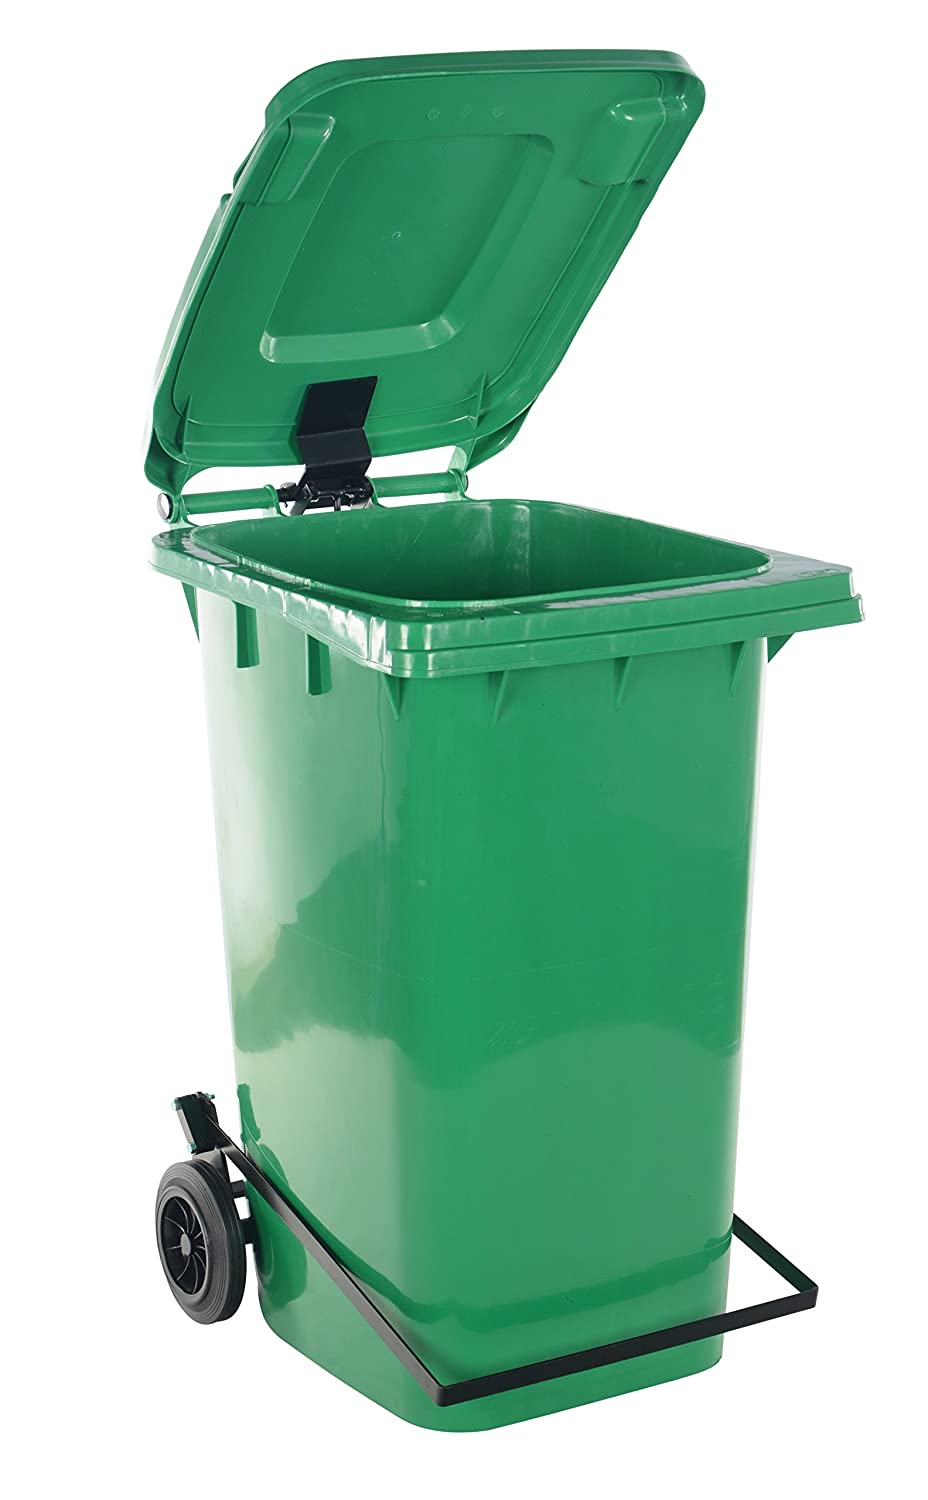 Vestil Save money TH-32-GRN-FL National products Trash Can with Foot Capacit lb. 32 Lid Lift